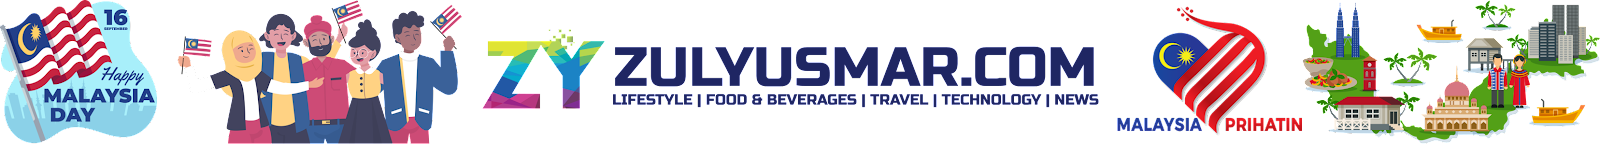 ZulYusmar.com | Malaysian Lifestyle, Food and Beverages, Travel, Technology and News